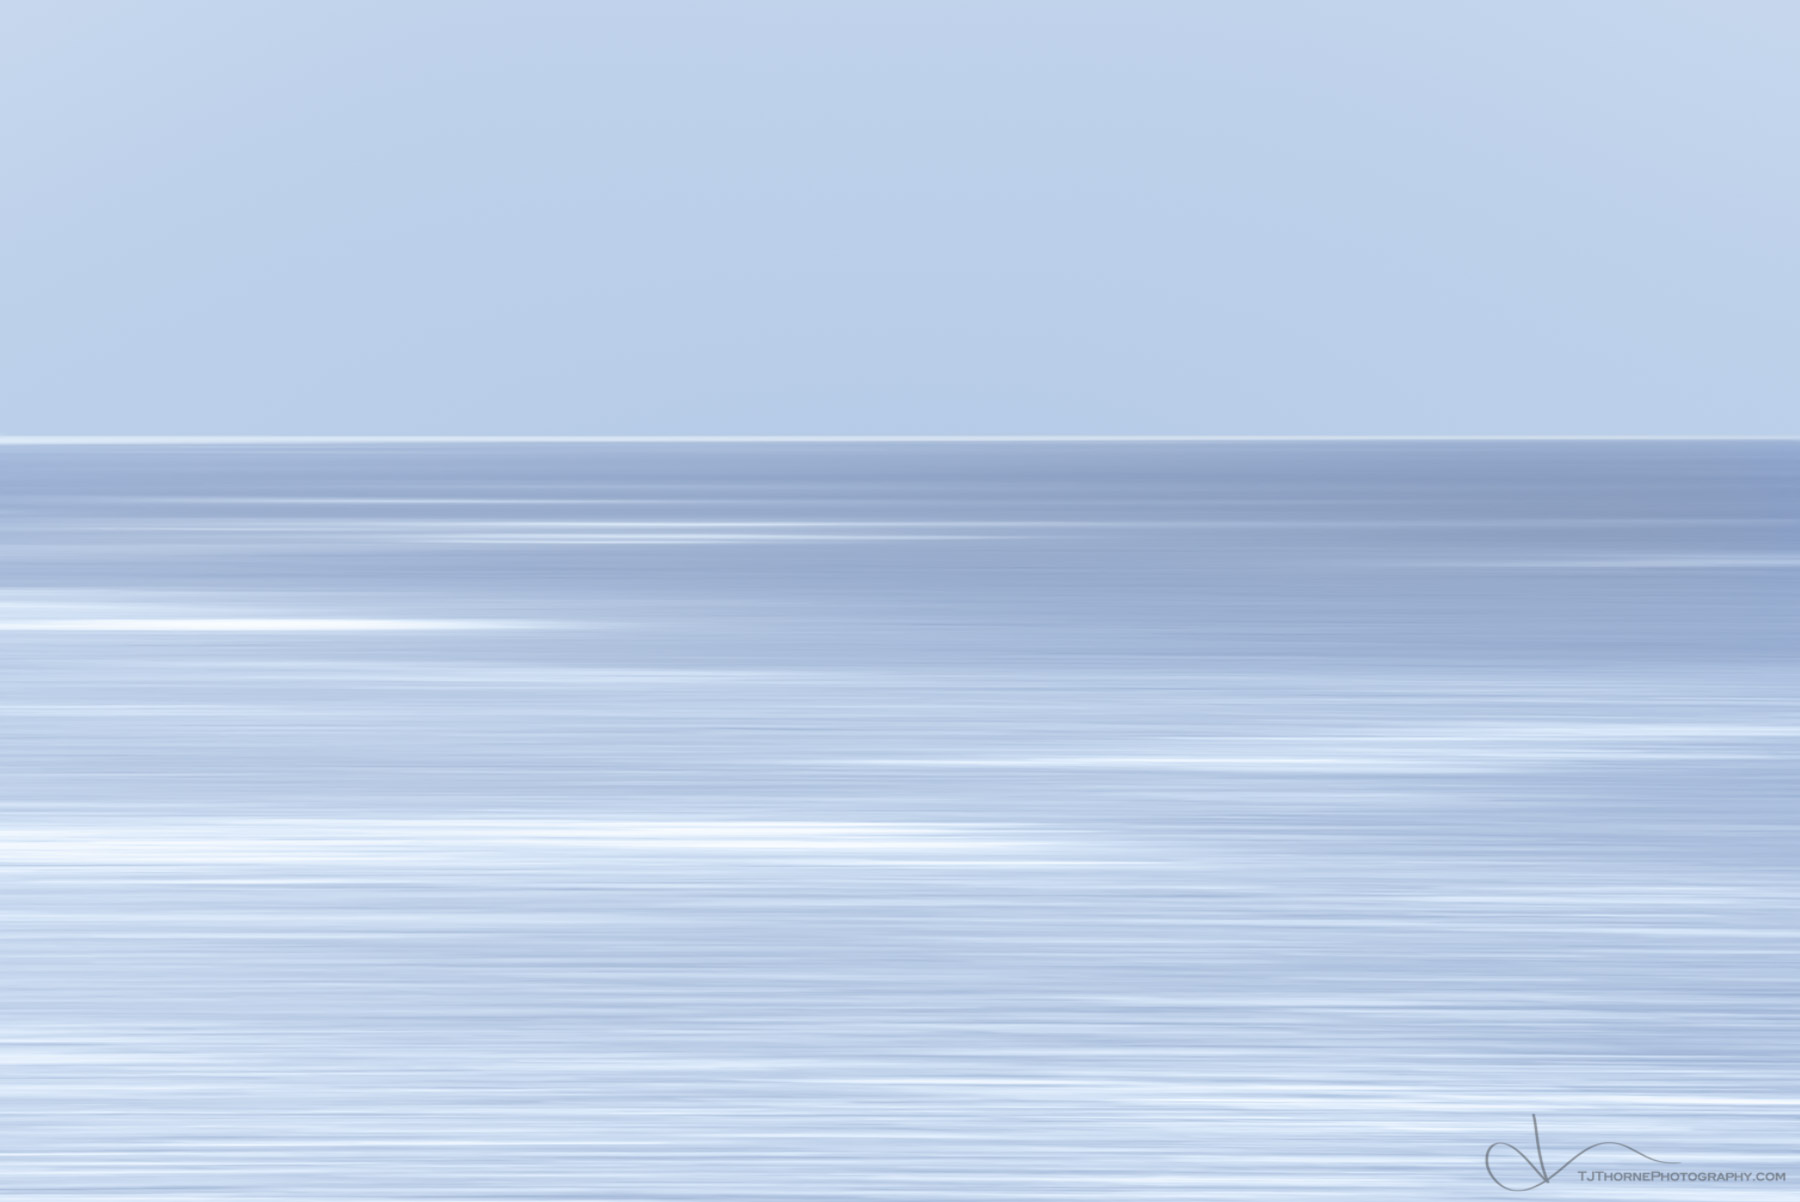 blue, icm, abstract, oregon, water, photo